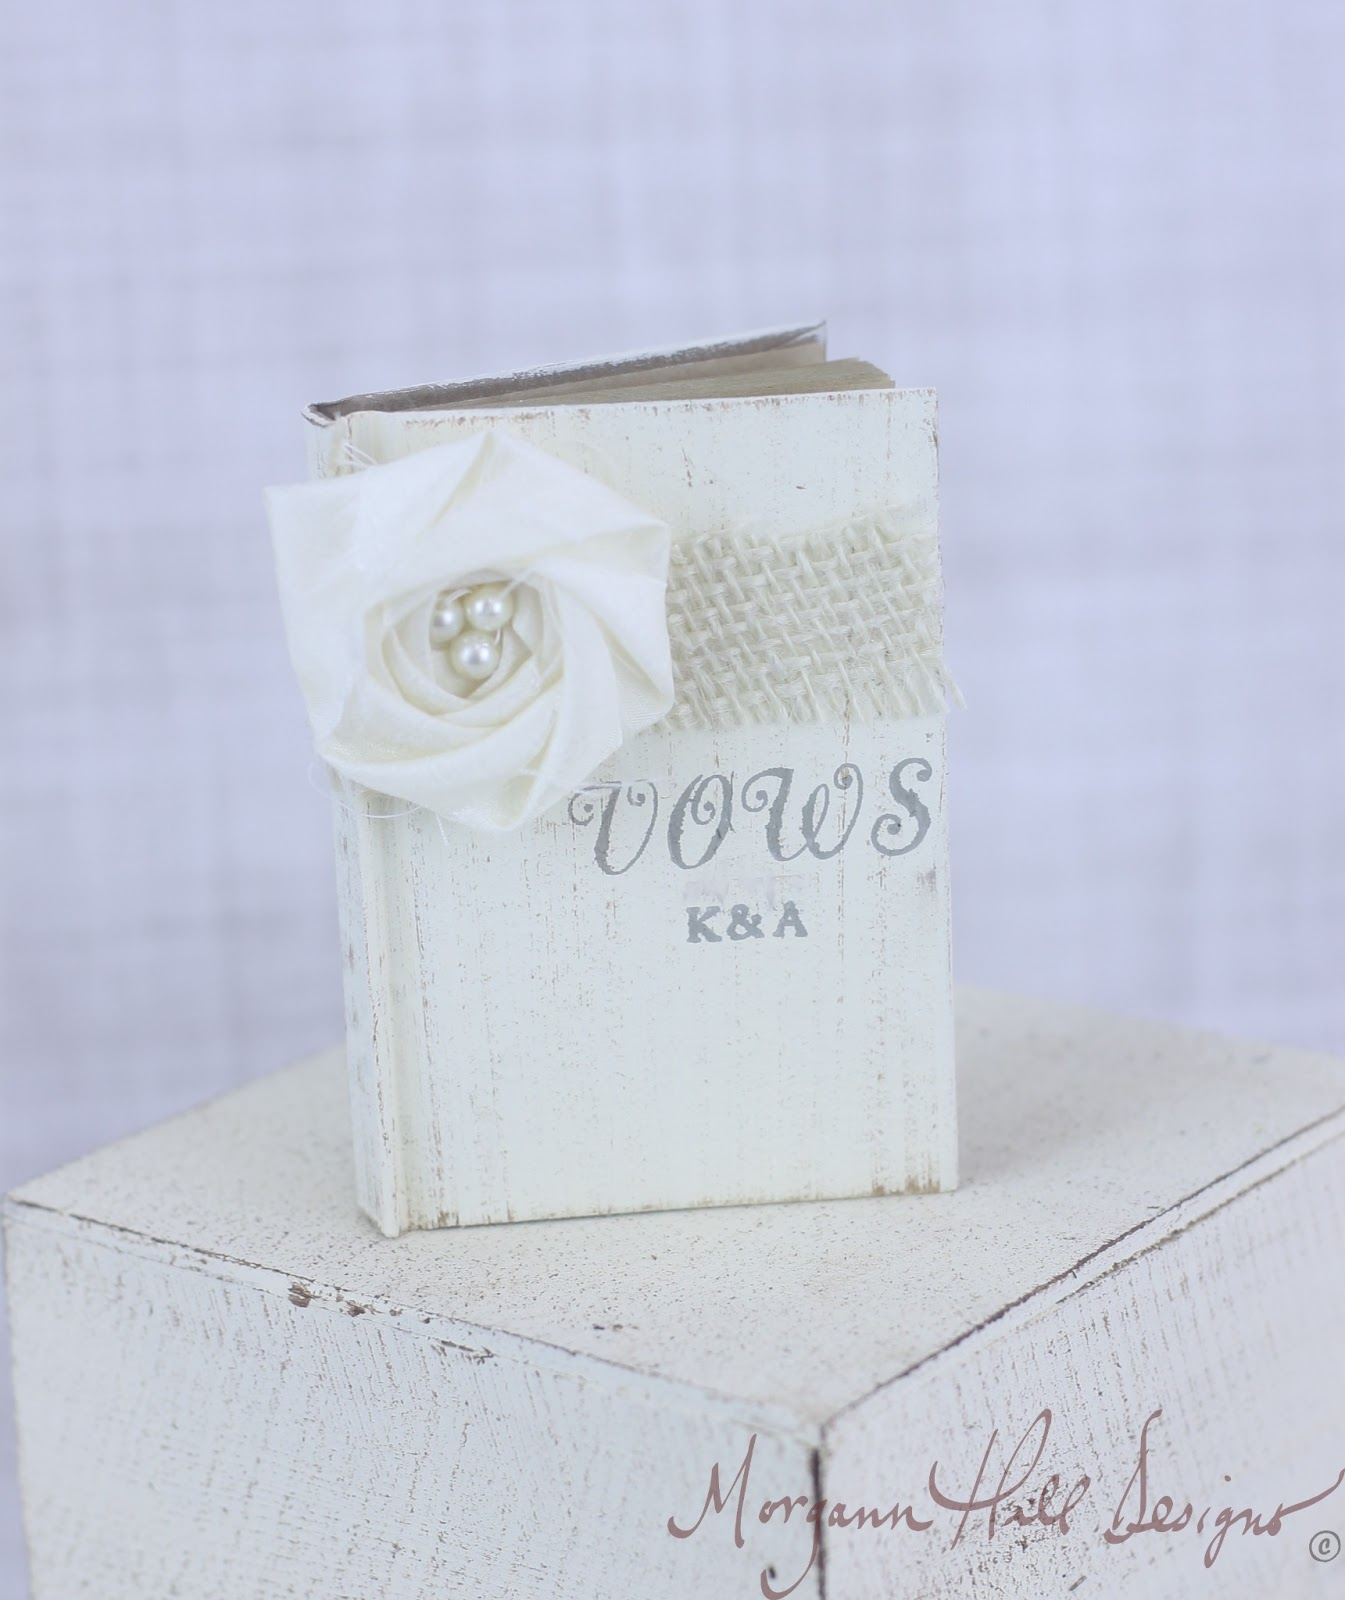 Morgann Hill Designs: Personalized Wedding Vows Book Rustic Chic ...